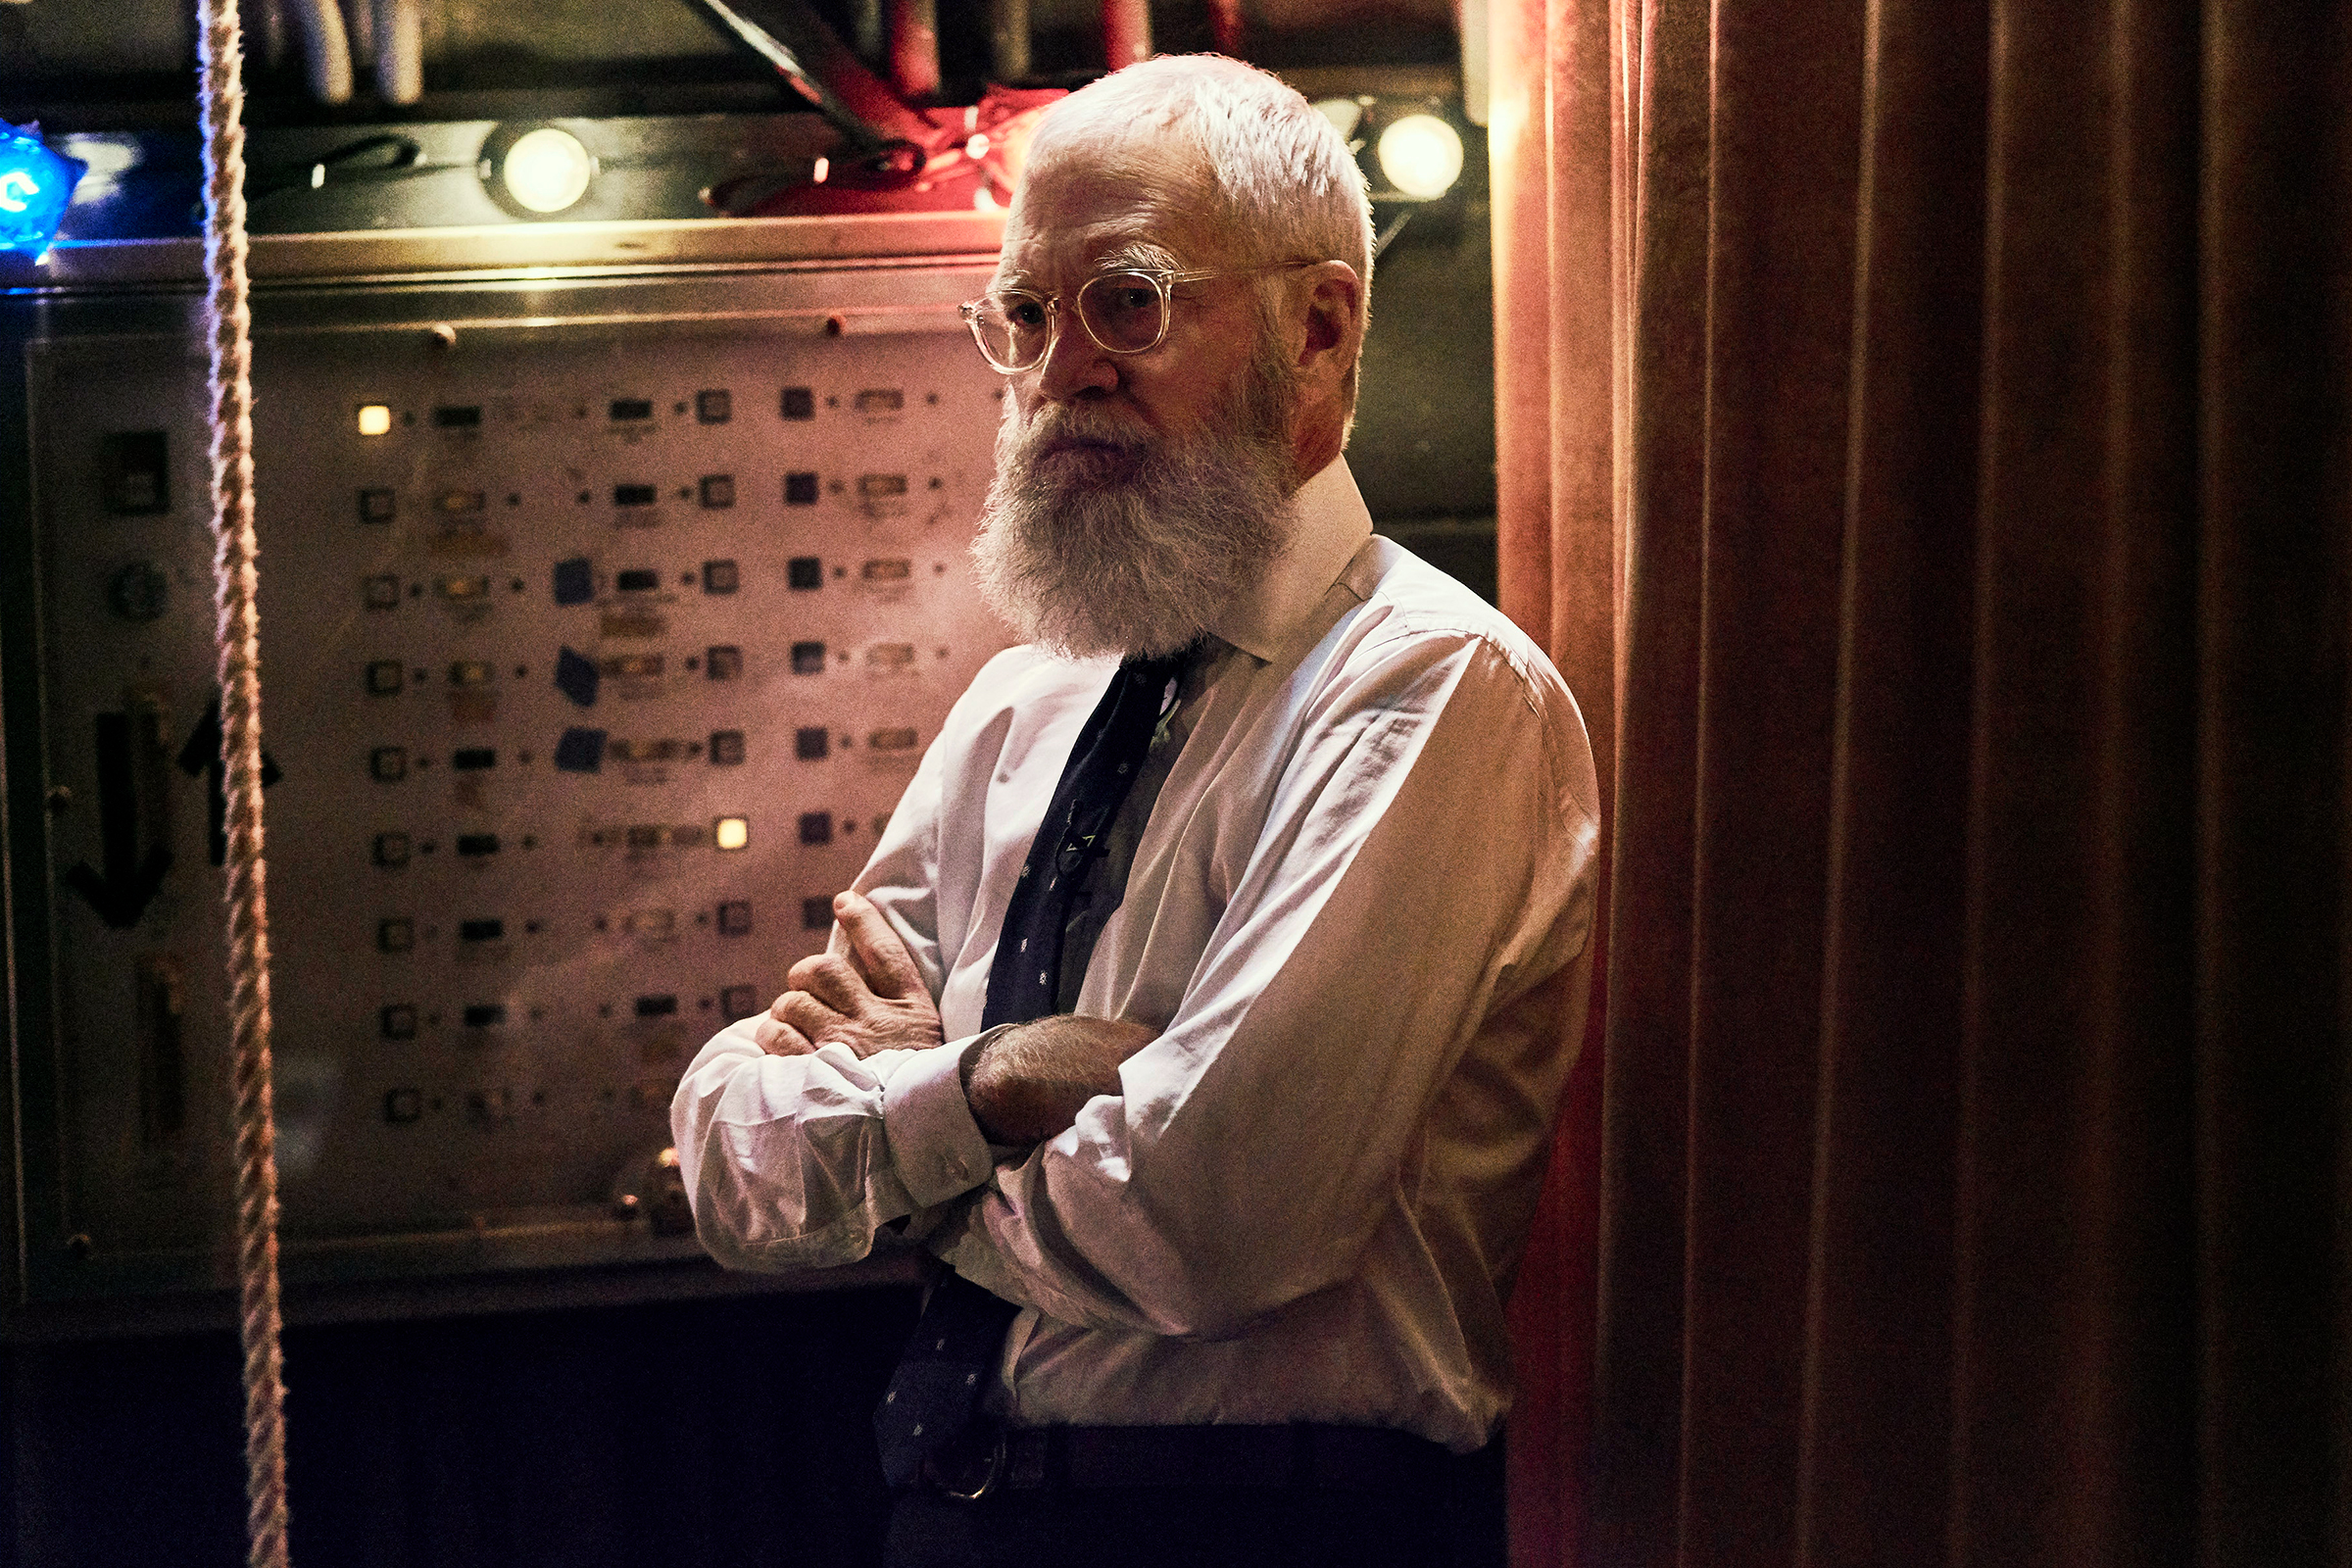 David Letterman's Interview Series Returning to Netflix